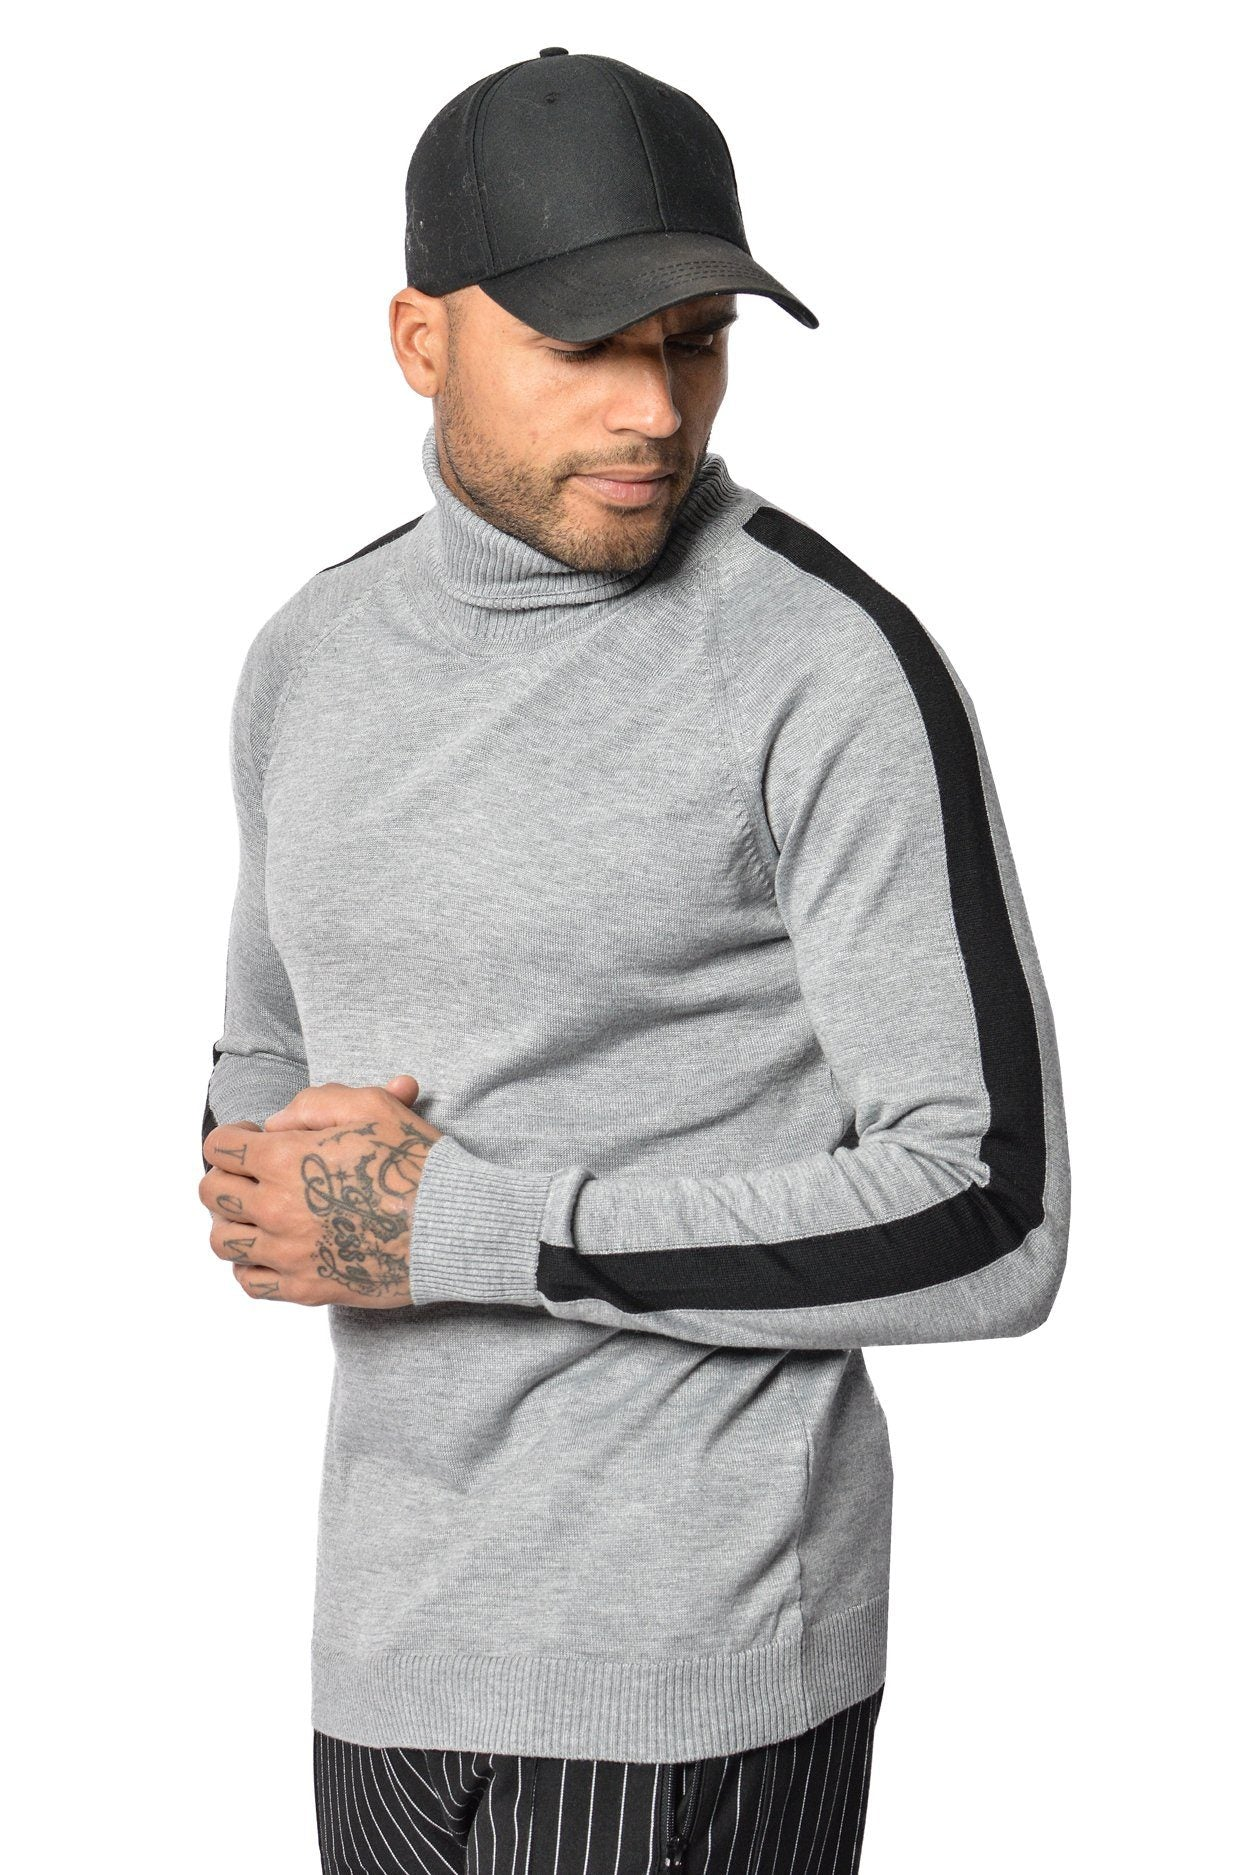 PEGADOR - Lui Turtleneck Grey Black - PEGADOR - Dominate the Hype